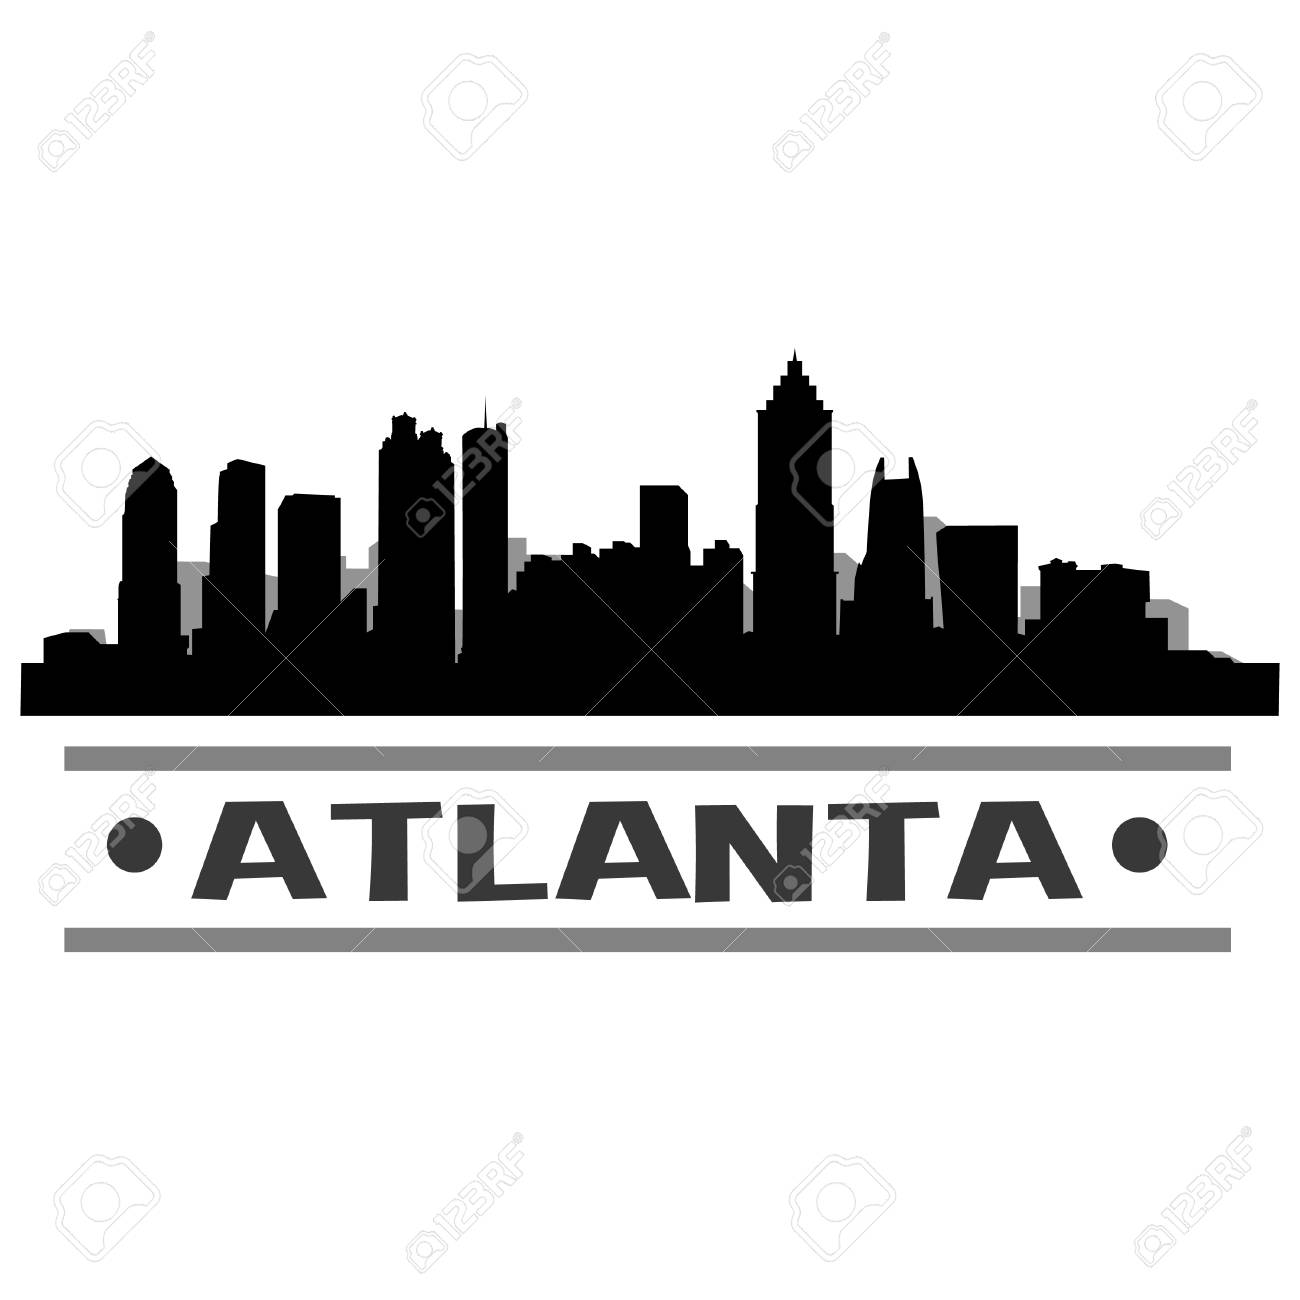 atlanta skyline vector art city design royalty free cliparts, vectors, and  stock illustration. image 83585797.  123rf